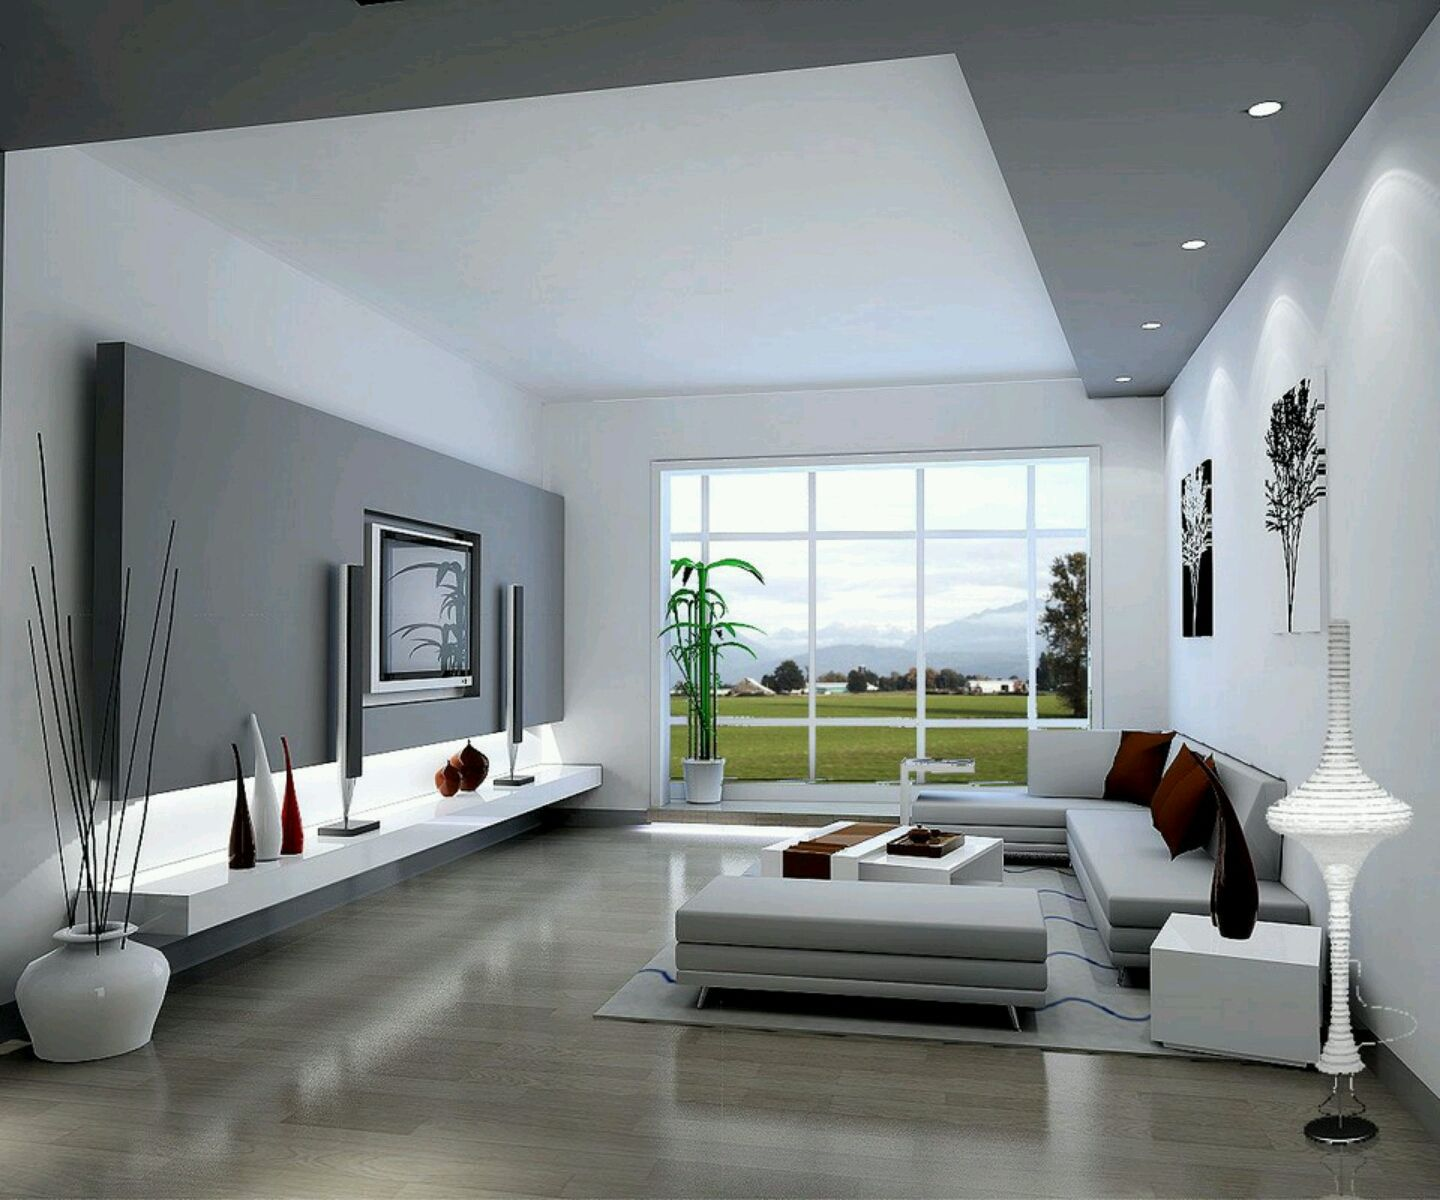 Fetching Living Room Apartment Interior Design Nigeria Living Room Living Room Ideas On Home Decor Styles Wall Cabinet Living Room Earthly Pleasures Living Room Design E Interior Design Living Room interior Interior Design Of Living Rooms